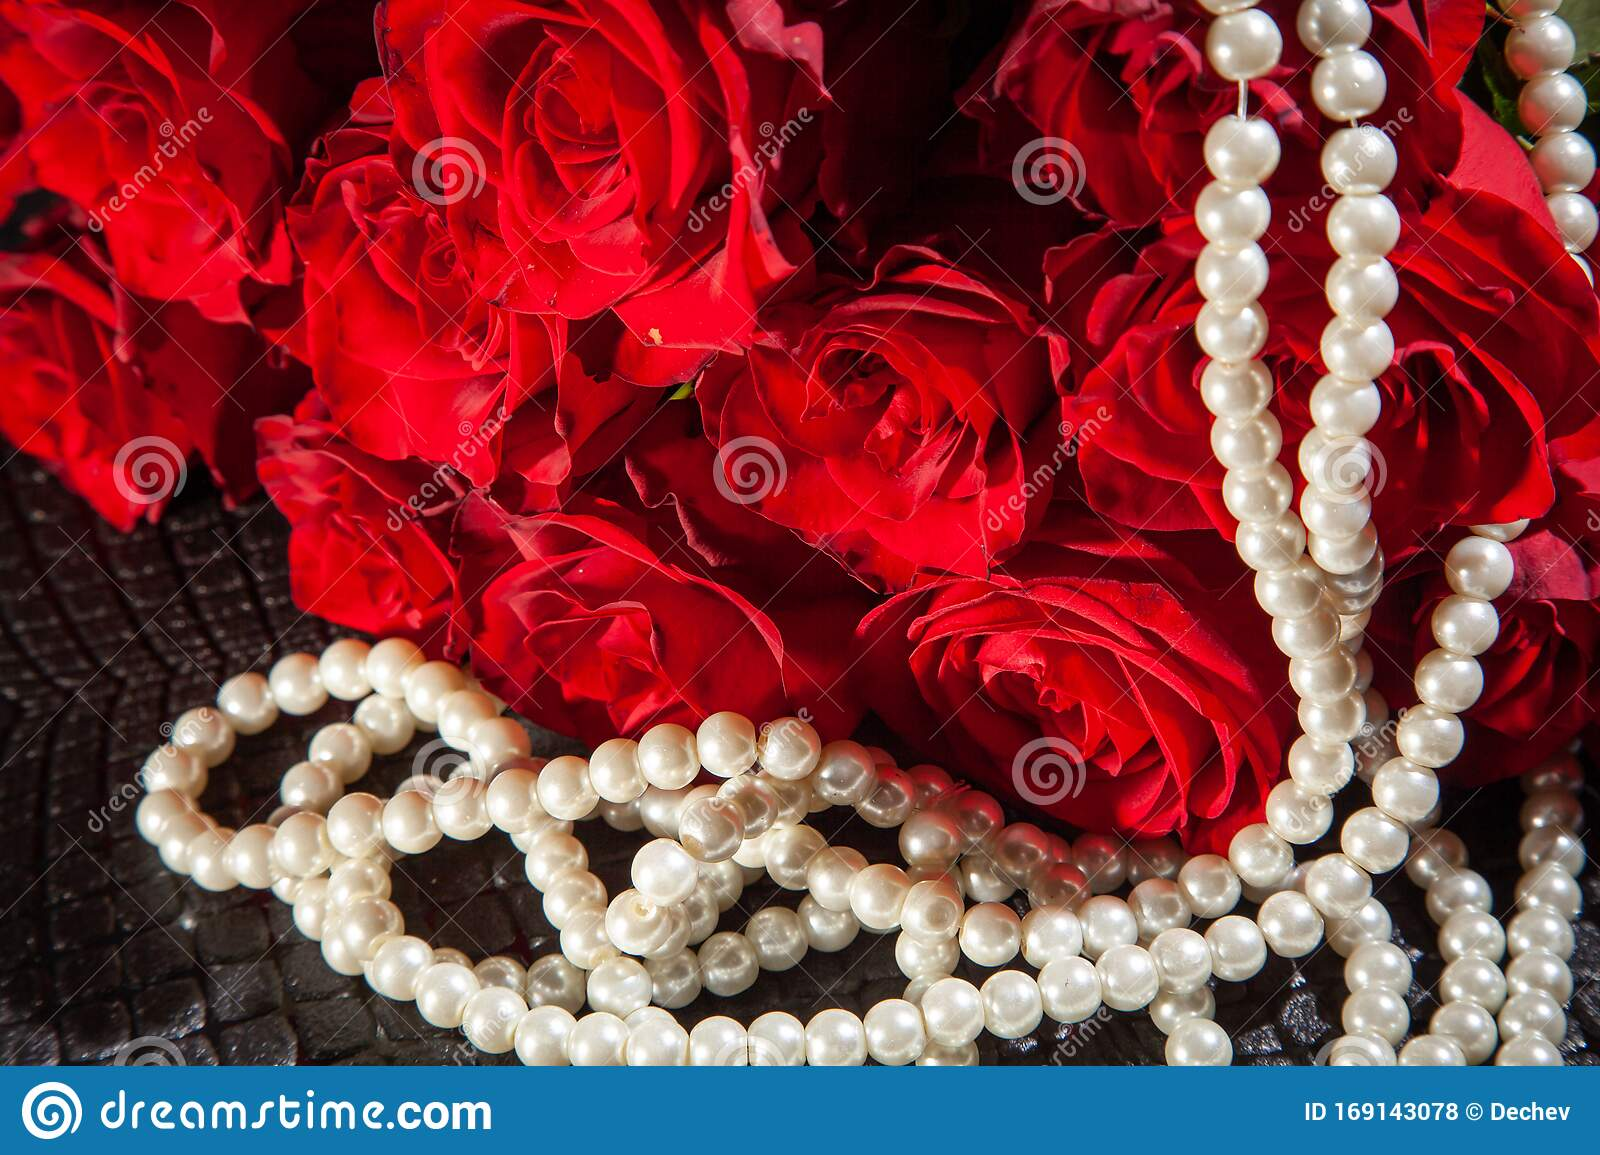 Beautiful Red Roses And White Pearls. Concept Of Beauty ...